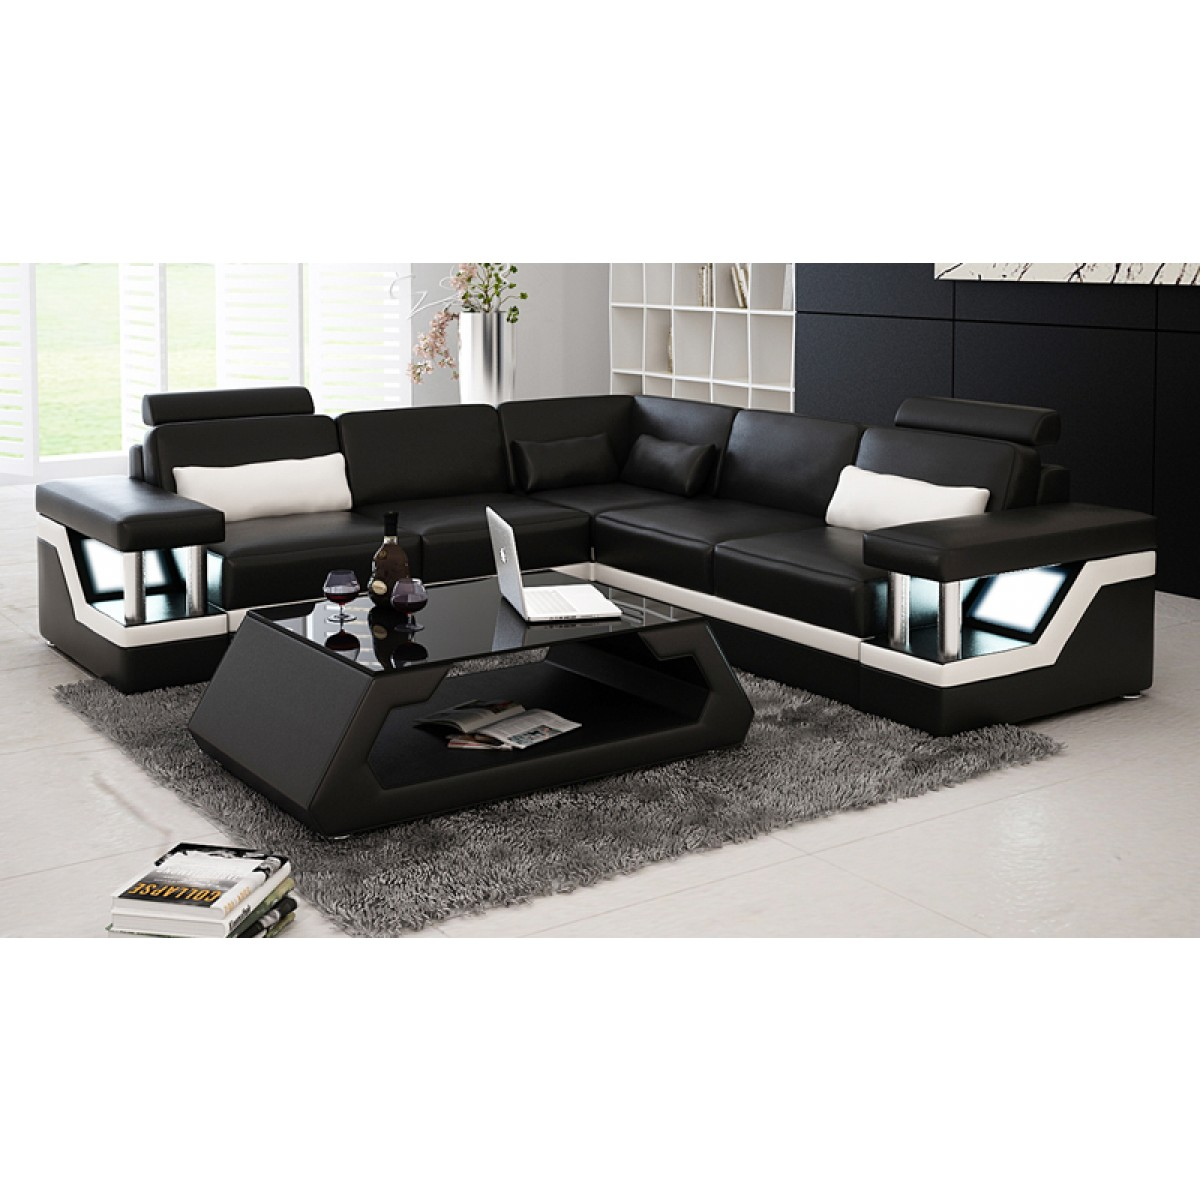 canap 3 places convertible maison et mobilier d 39 int rieur. Black Bedroom Furniture Sets. Home Design Ideas